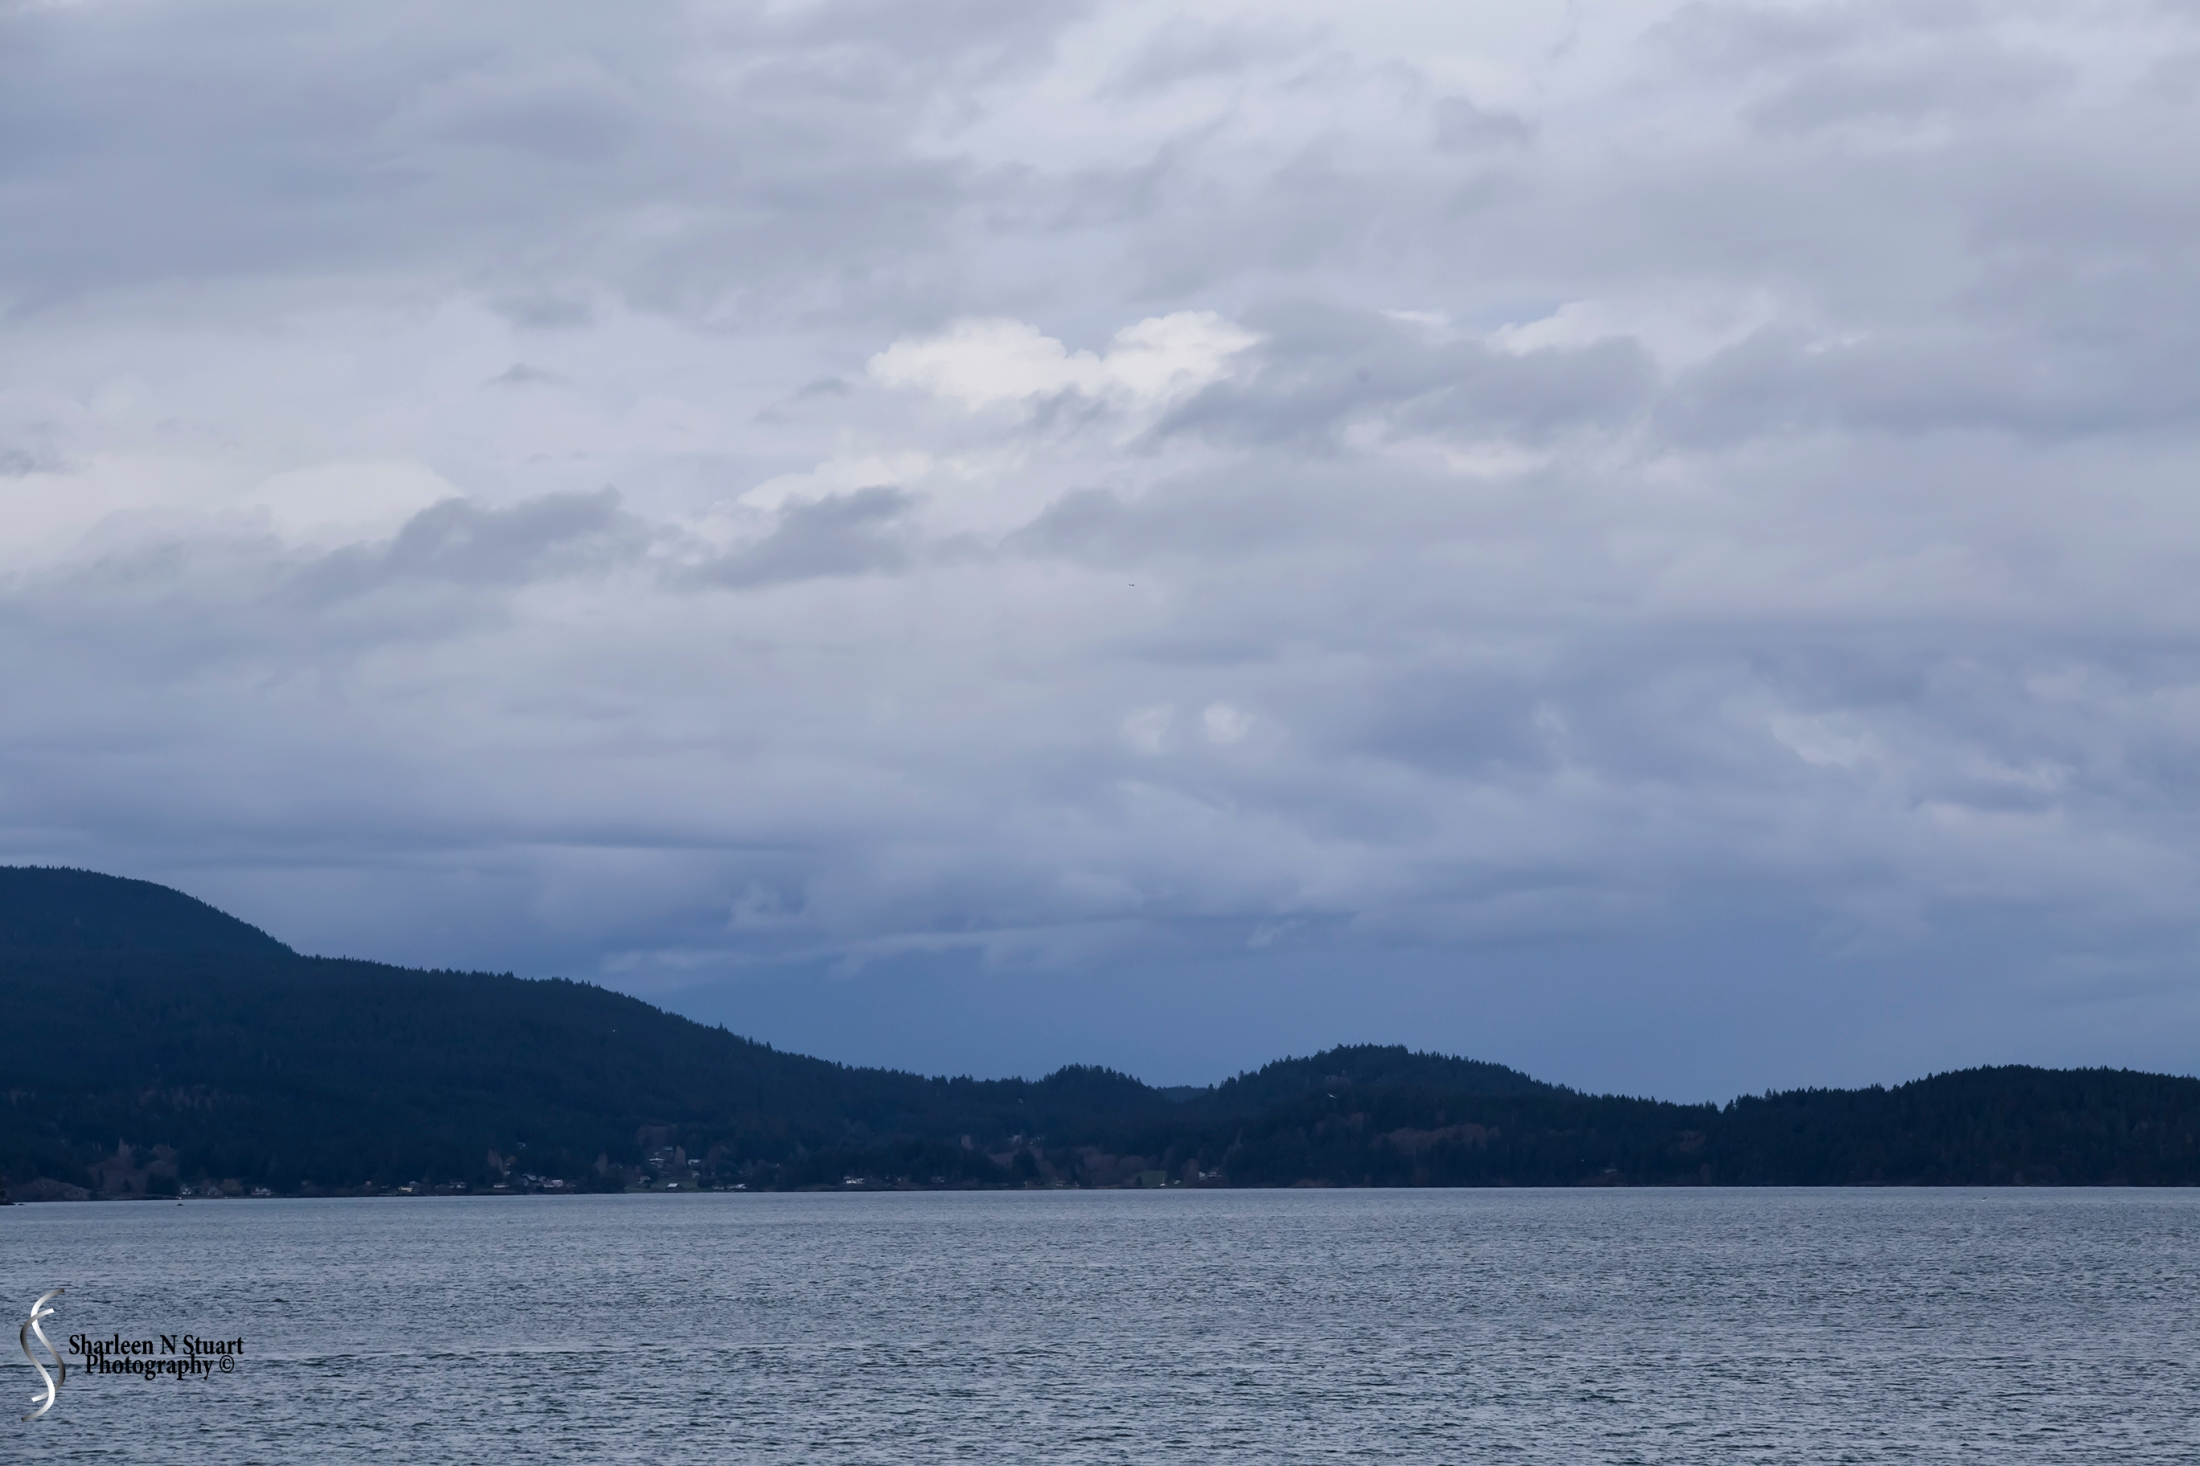 It was with sadness that we left Friday Harbor. I think there was more to see but we did run out of time. Our day was good. A few drops of rain but nothing we could not deal with. Leaving Friday Harbor, the closing day is cloudy and overcast.